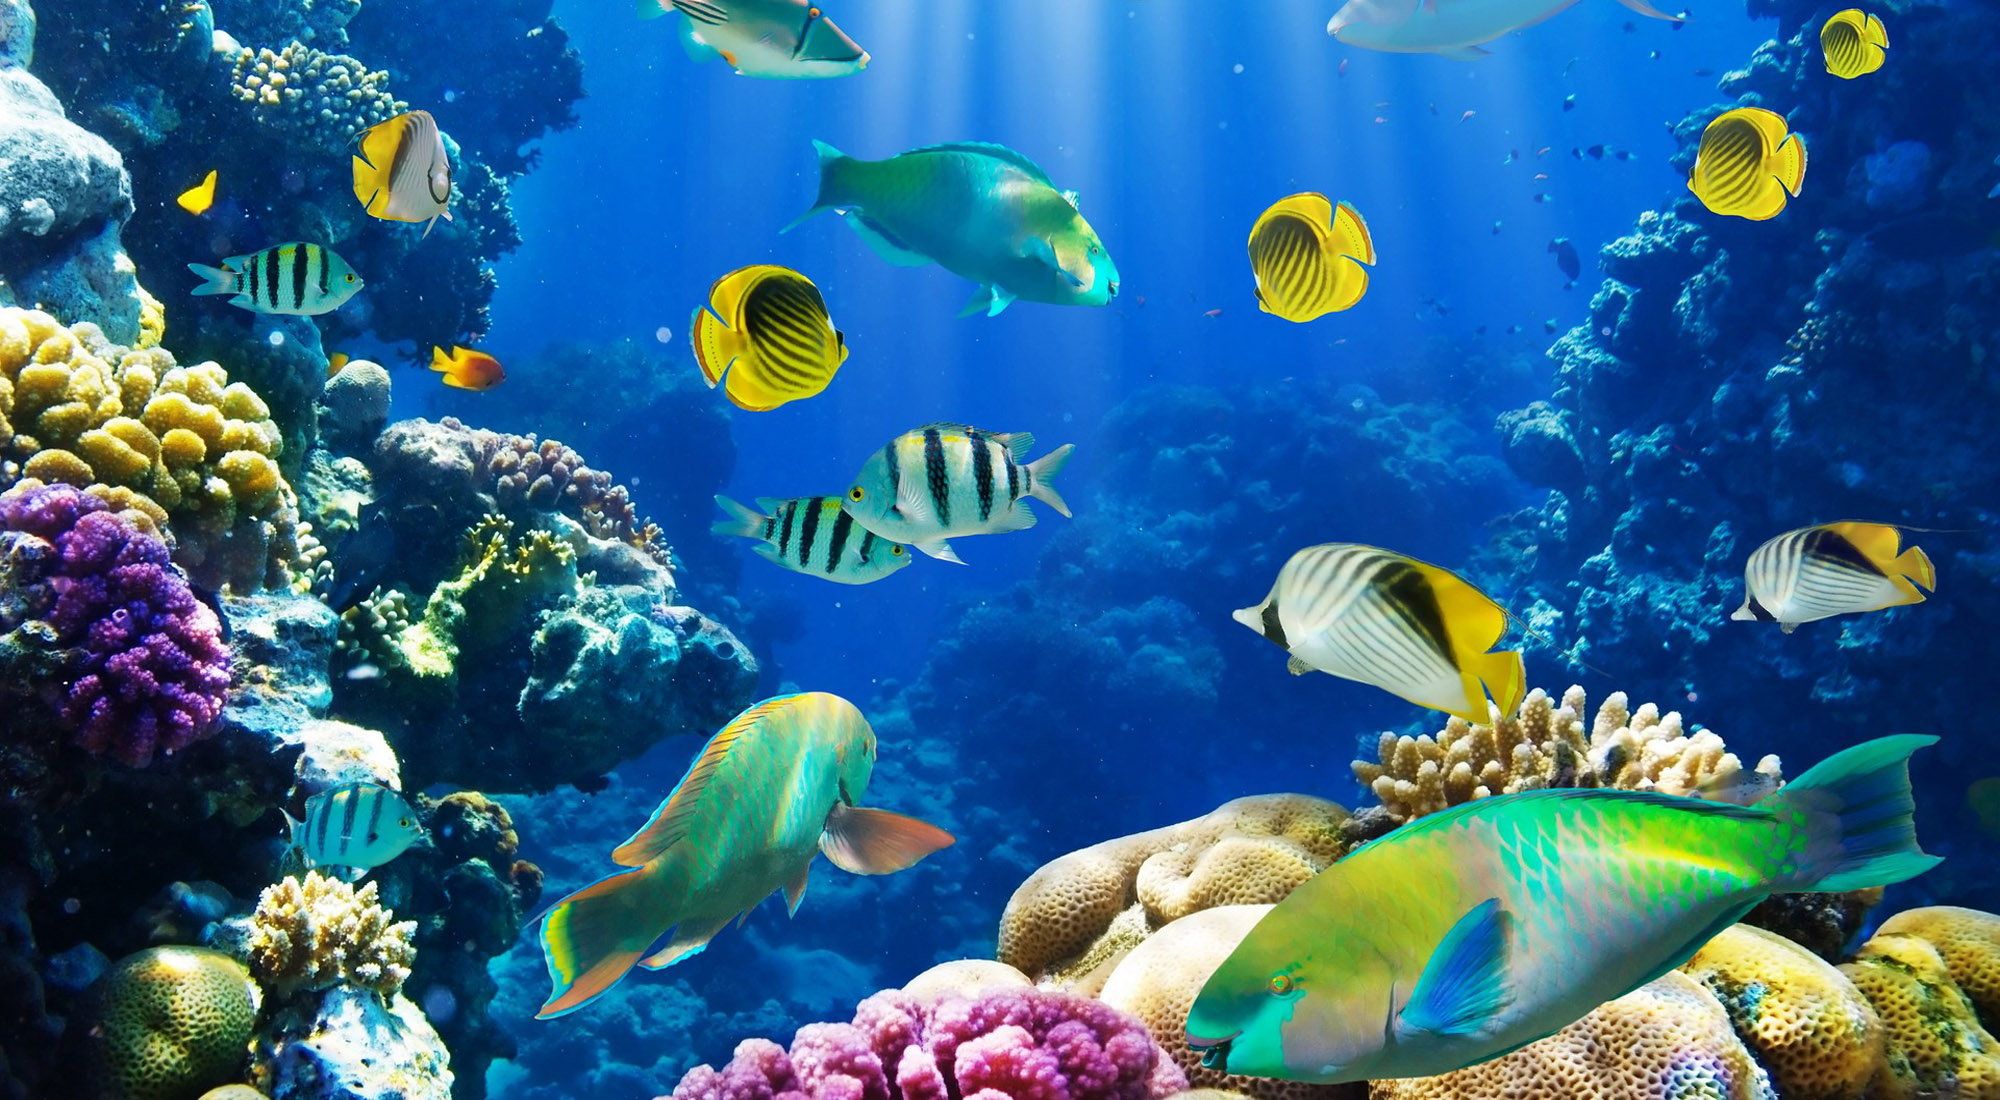 Fish Wallpaper Free